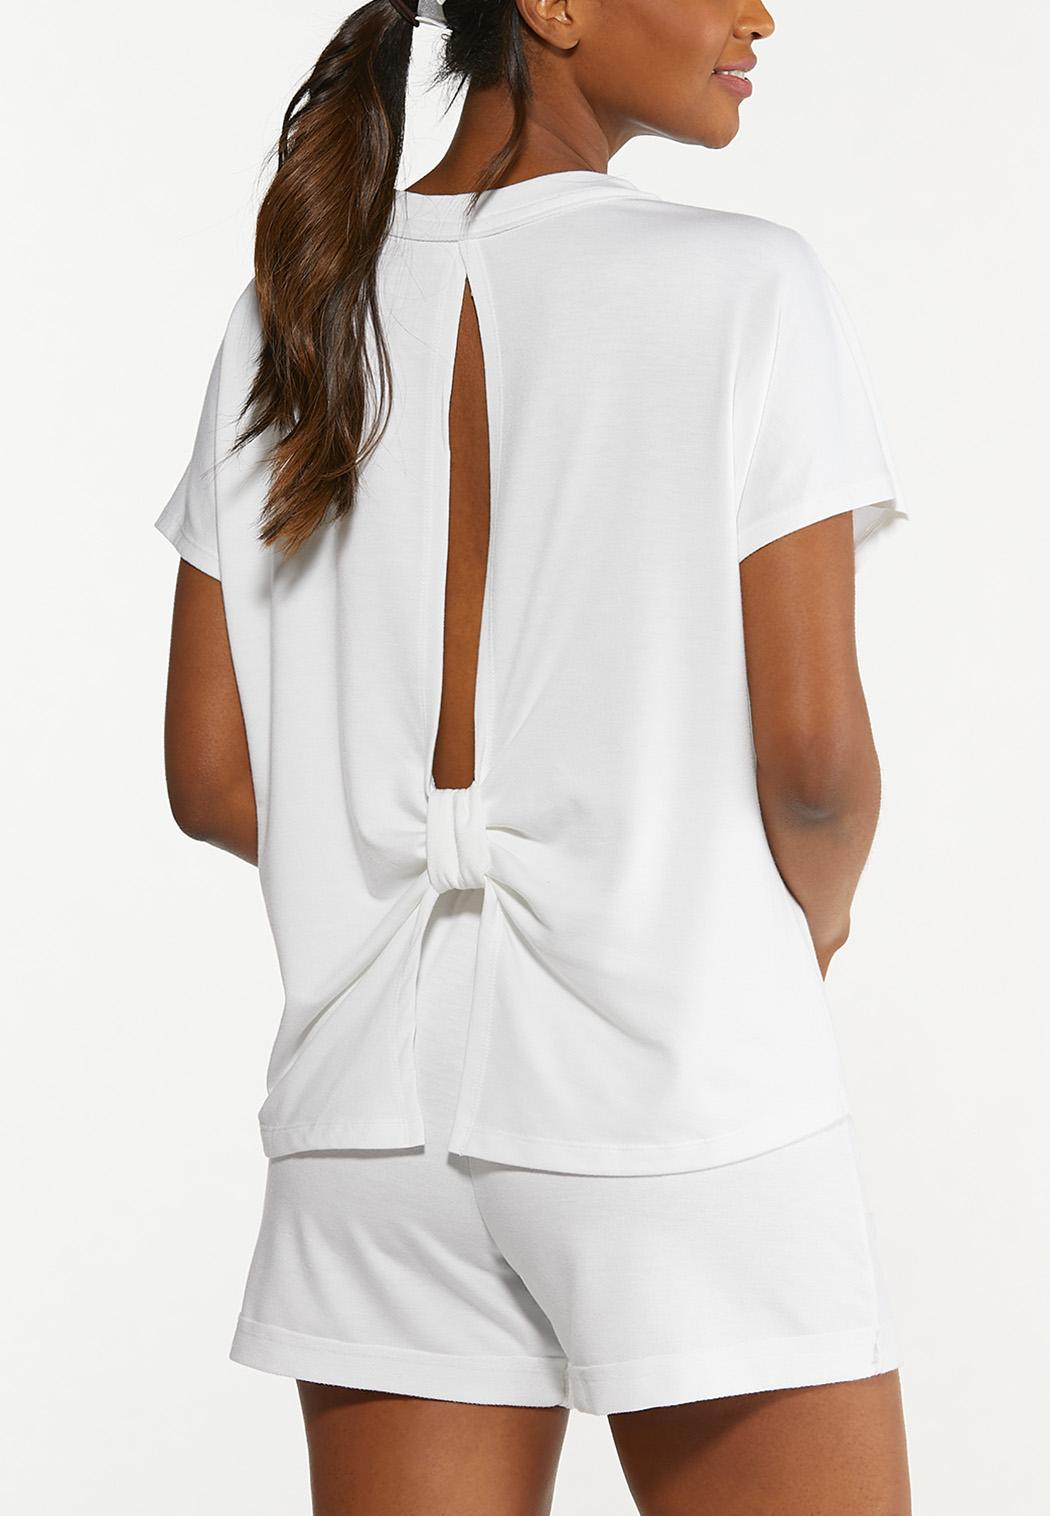 French Terry Cutout Back Top (Item #44627309)